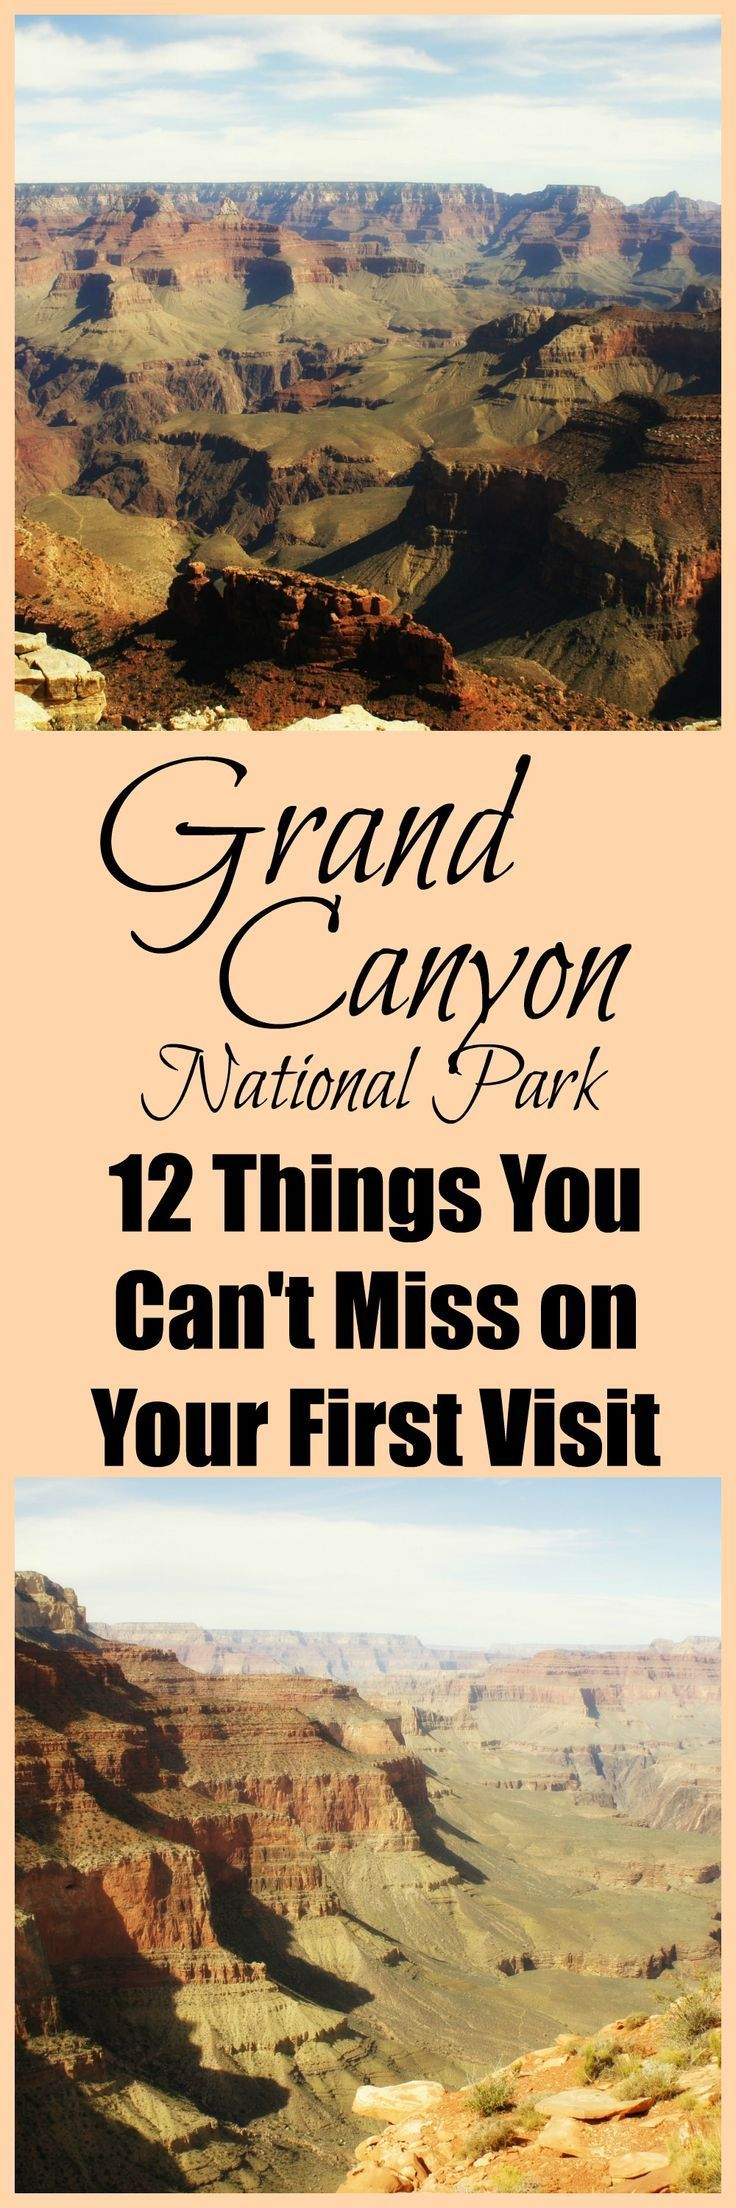 Don't miss out on any of the best spots in the Grand Canyon!  This list is a comprehensive guide to the North and South Rim viewpoints, hikes, and points of interest that you can't miss on your first visit.  This guide is written by a former park ranger and has some amazing tips!  12 Things You Can't Miss on Your First Visit to the Grand Canyon